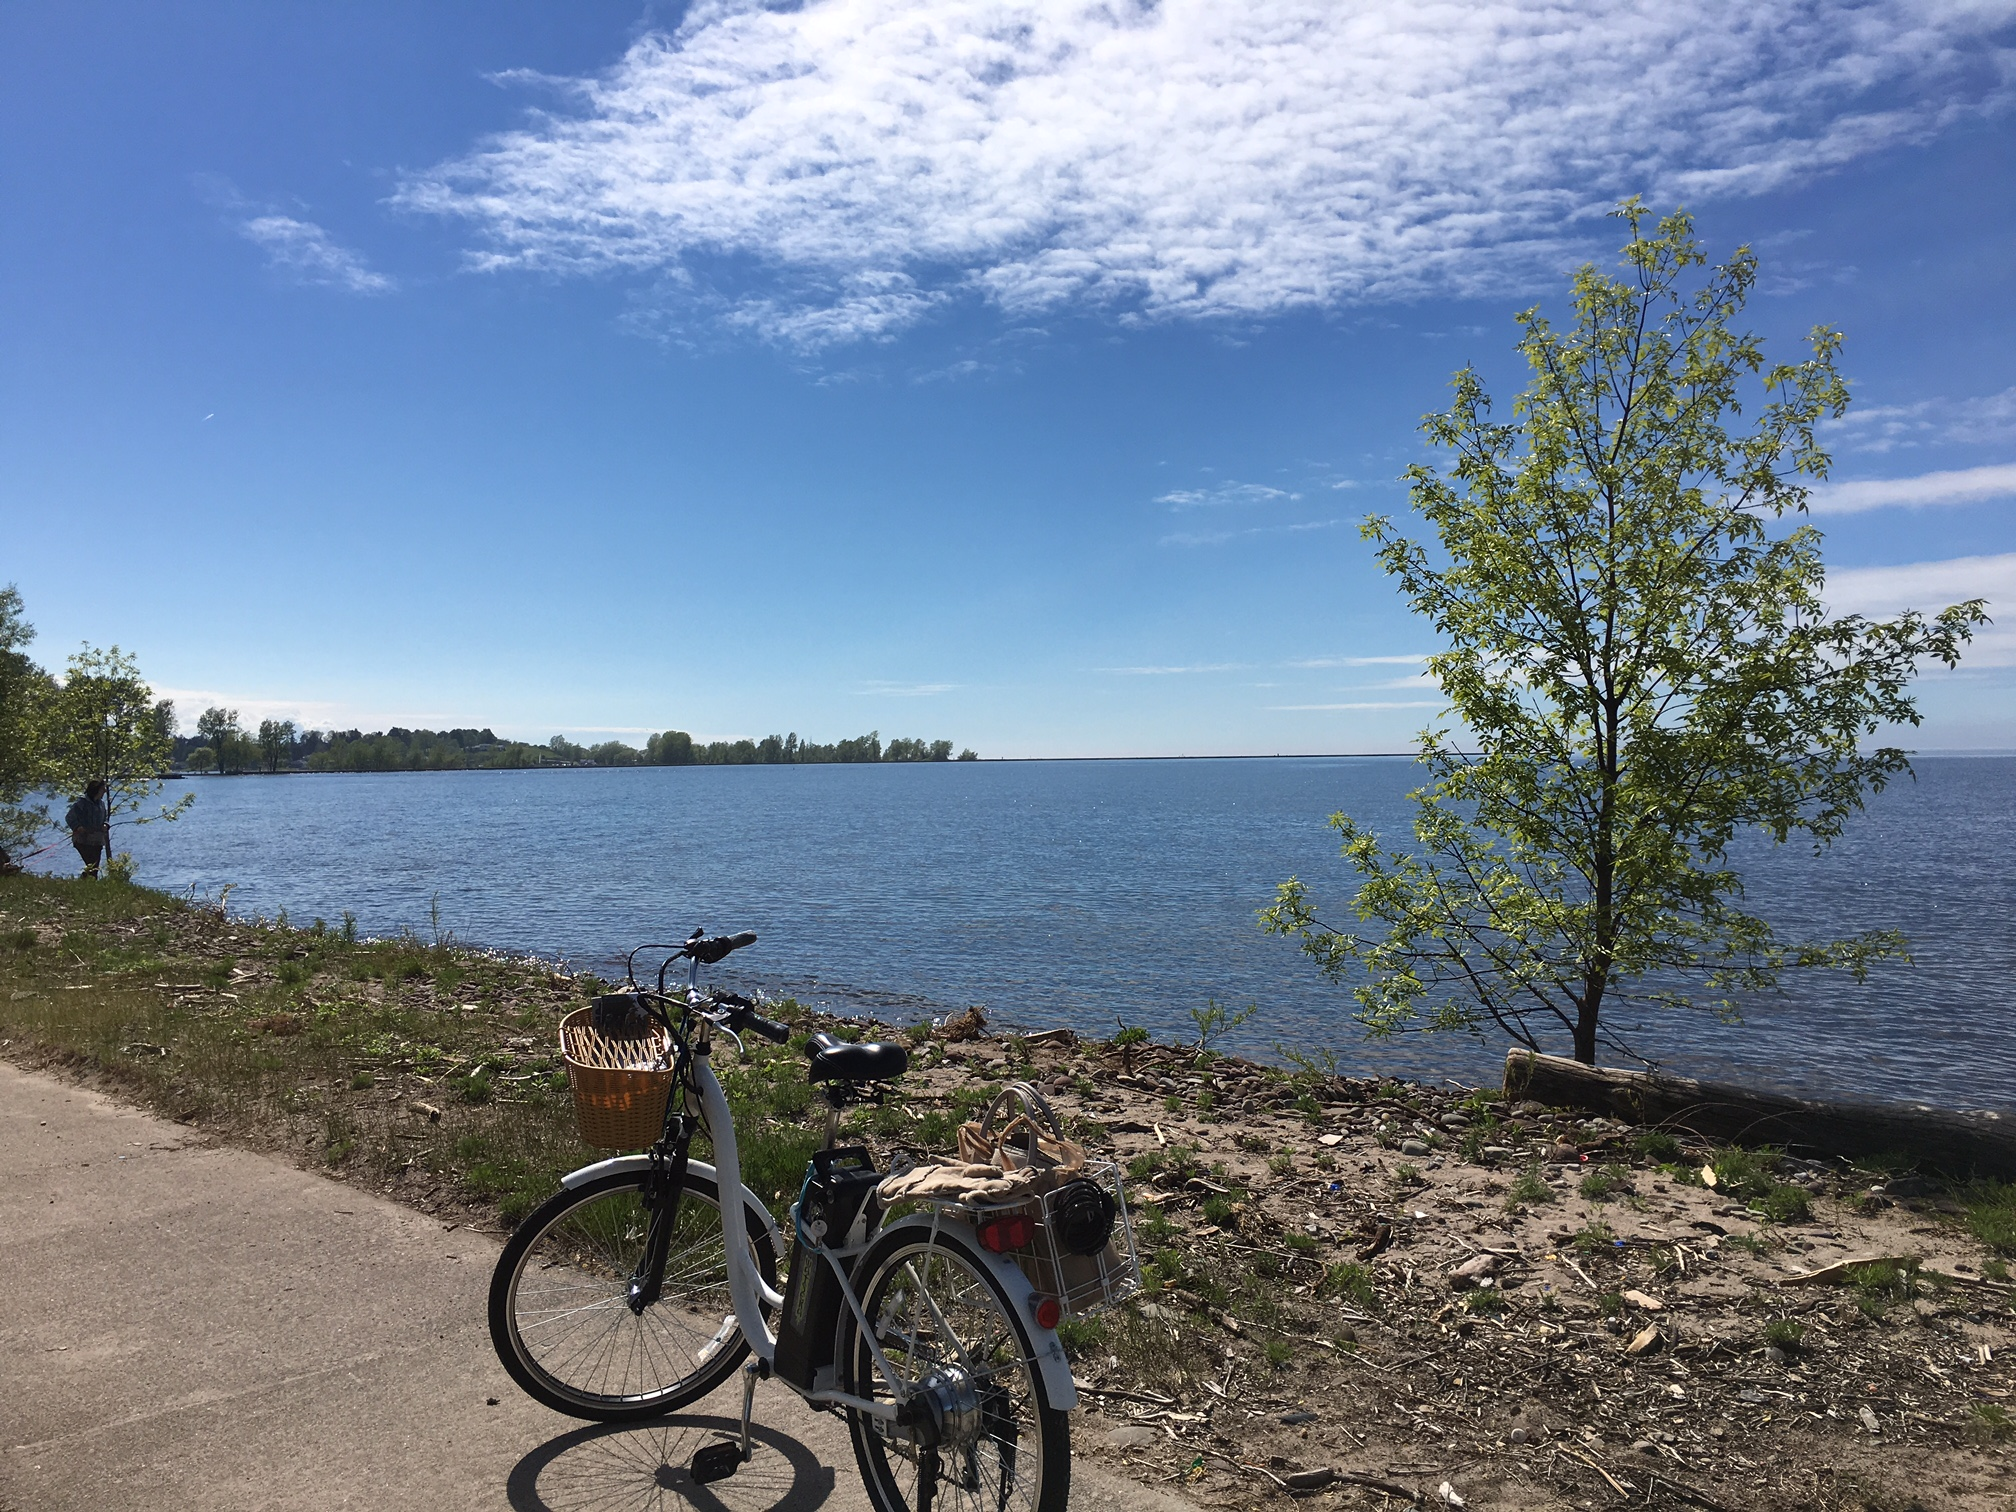 Lake Ontario, May 27, 2017